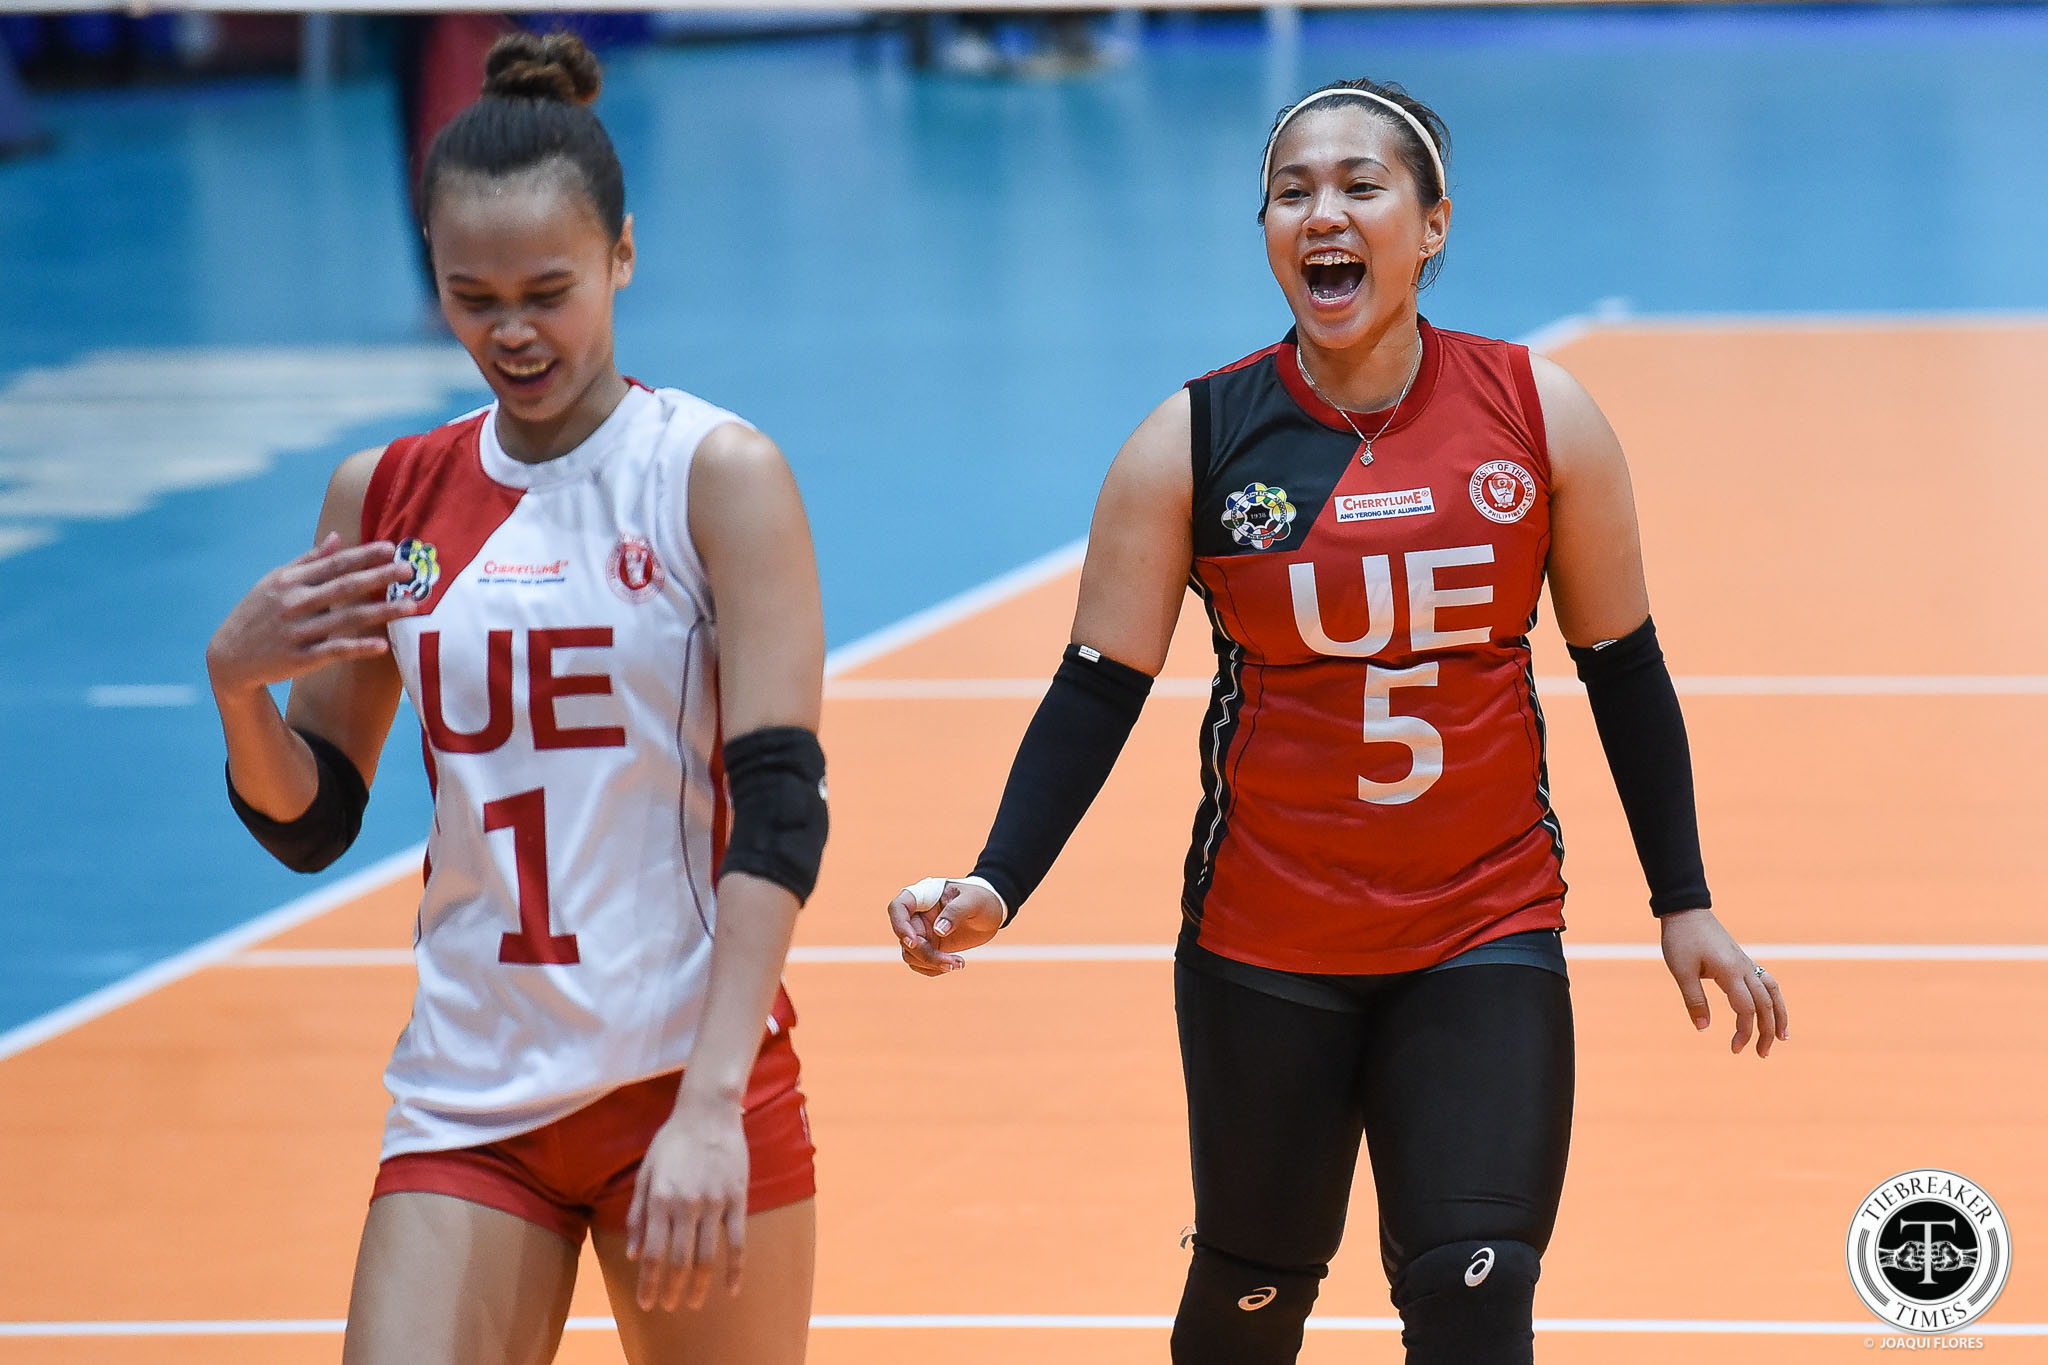 Tiebreaker Times As final UAAP game draws near, Kath Arado finds peace News UAAP UE Volleyball  UE Women's Volleyball UAAP Season 81 Women's Volleyball UAAP Season 81 Kath Arado